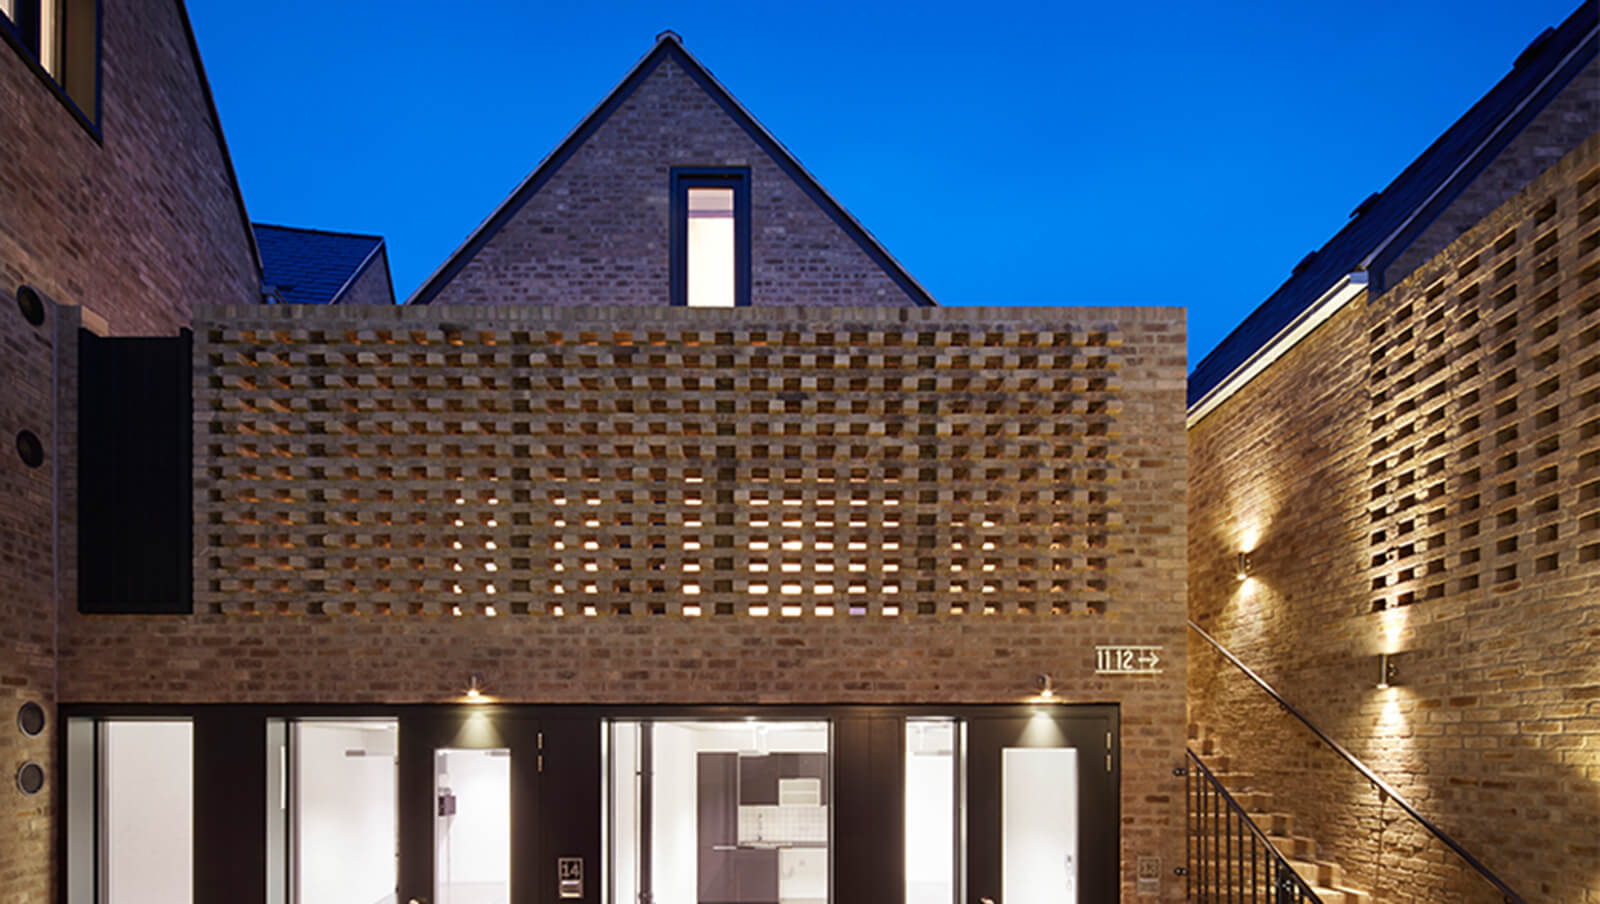 © Jack Hobhouse / Foundry Mews / Project Orange